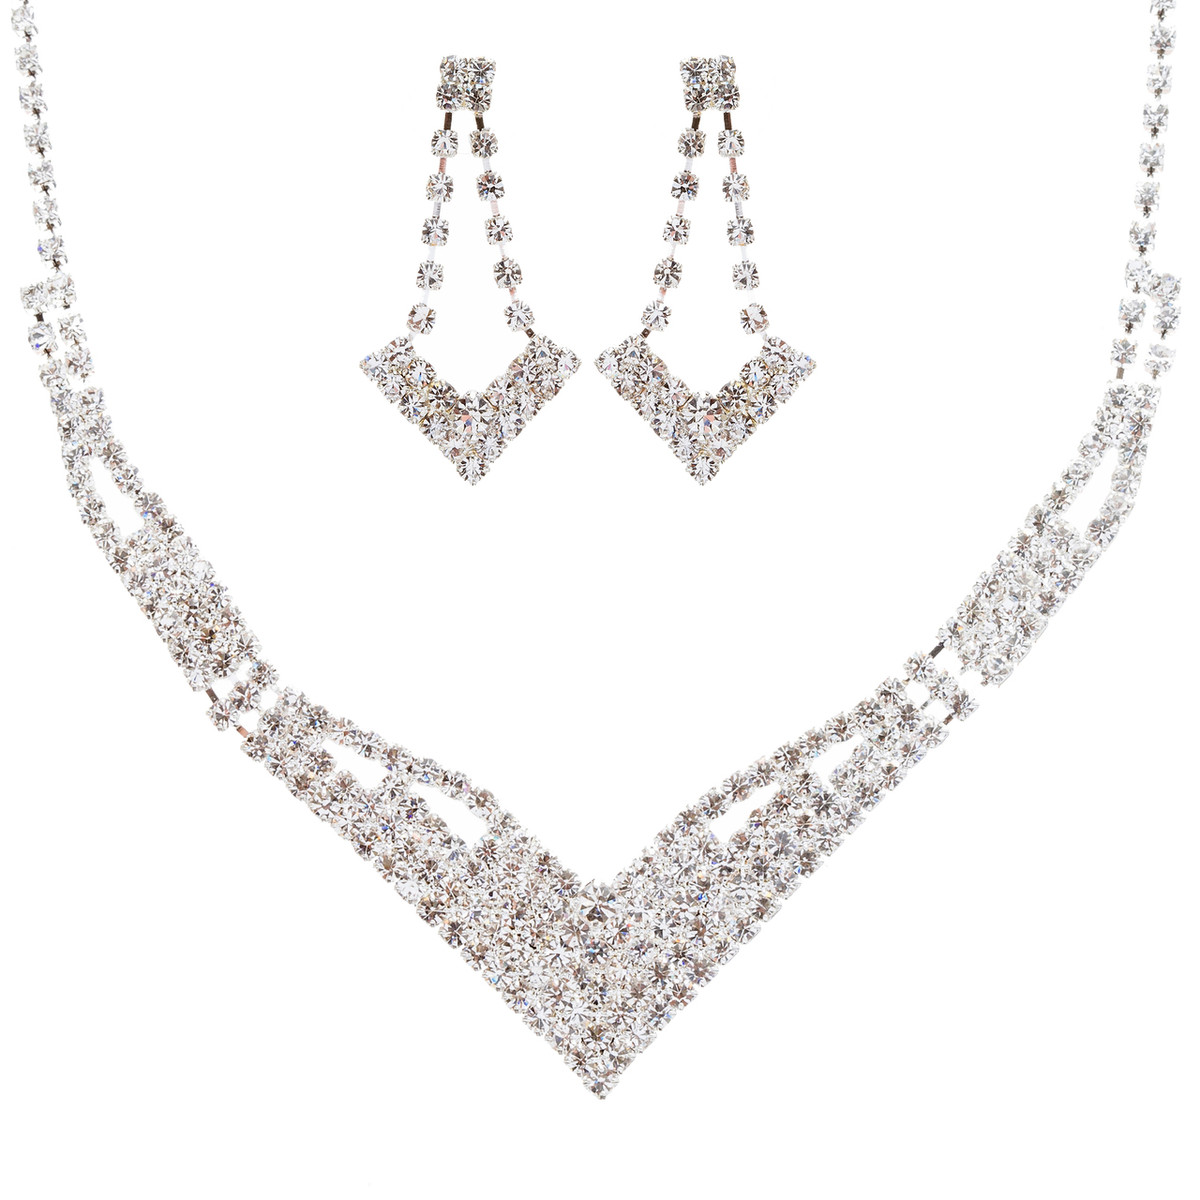 ACCESSORIESFOREVER Bridal Wedding Jewelry Set Prom Crystal